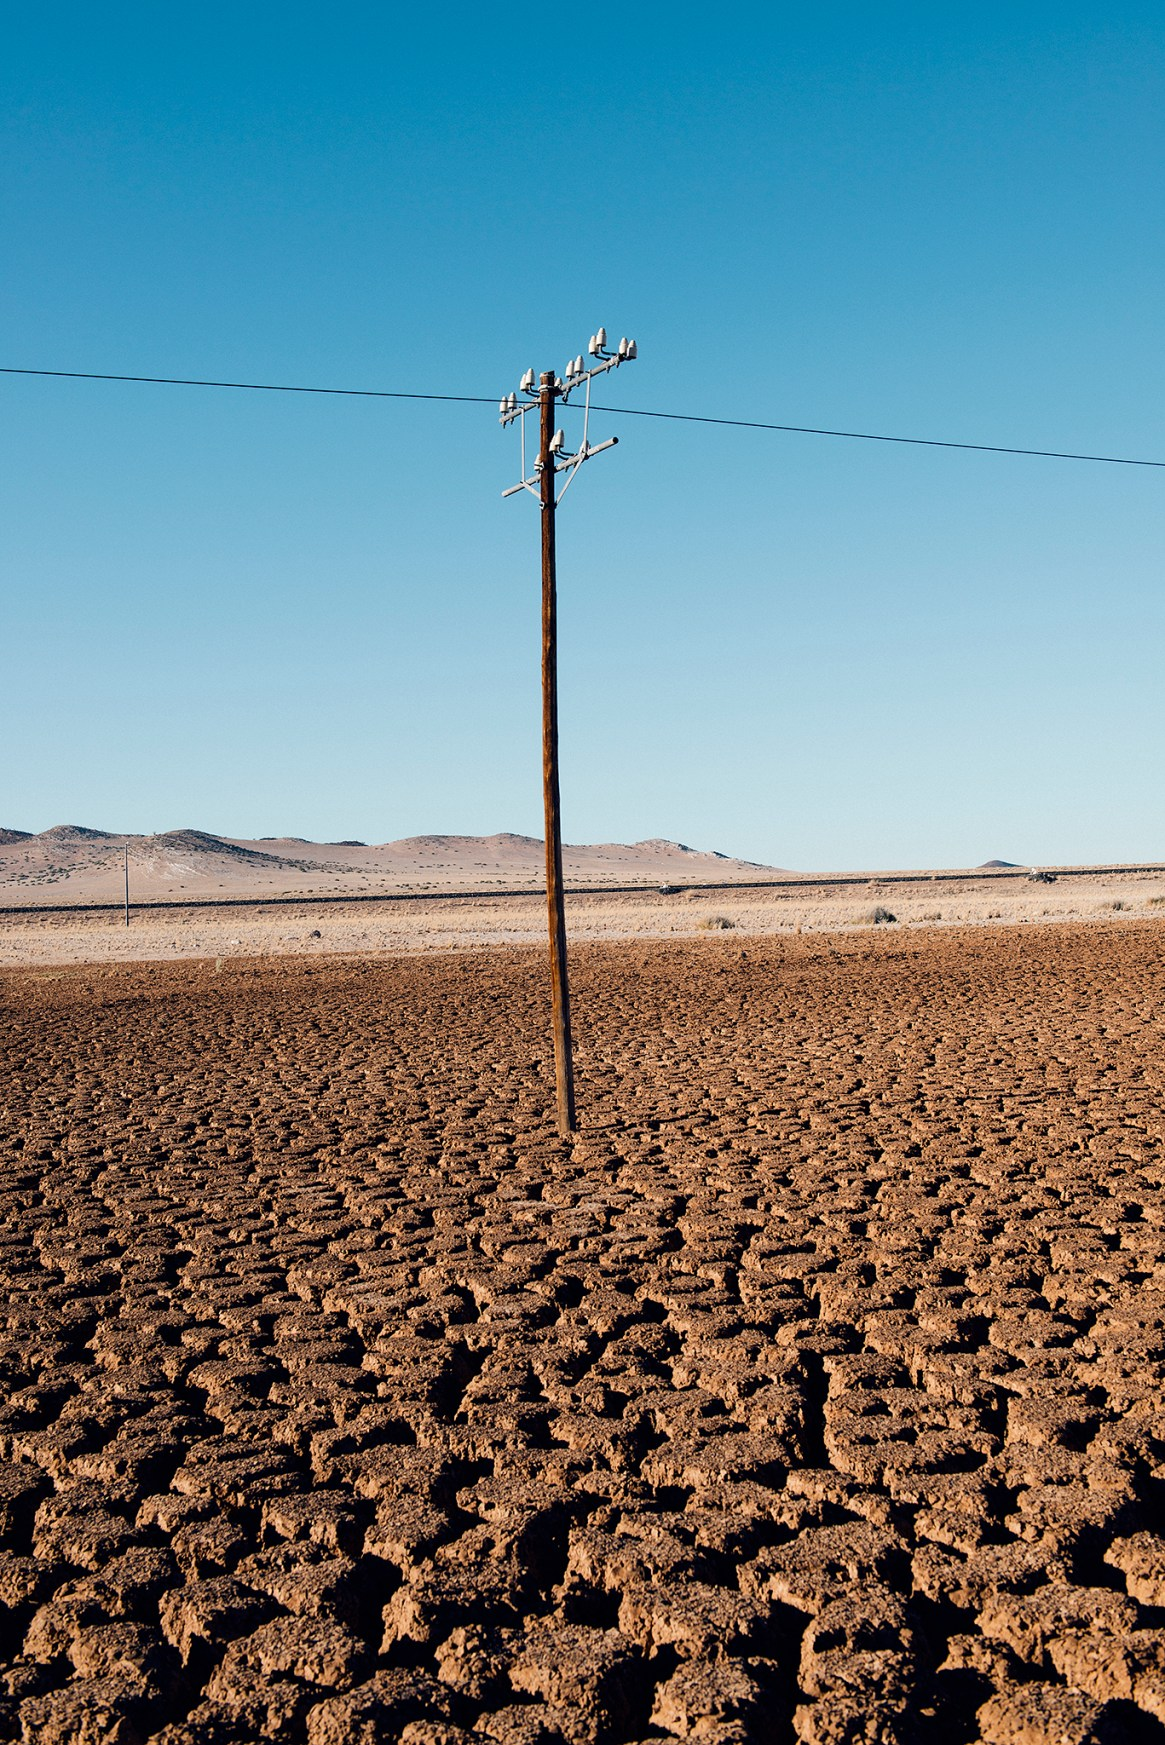 A solitary telephone pole planted in the crevassed semi-desert soil on the road between Aus and Luderitz in Namibia